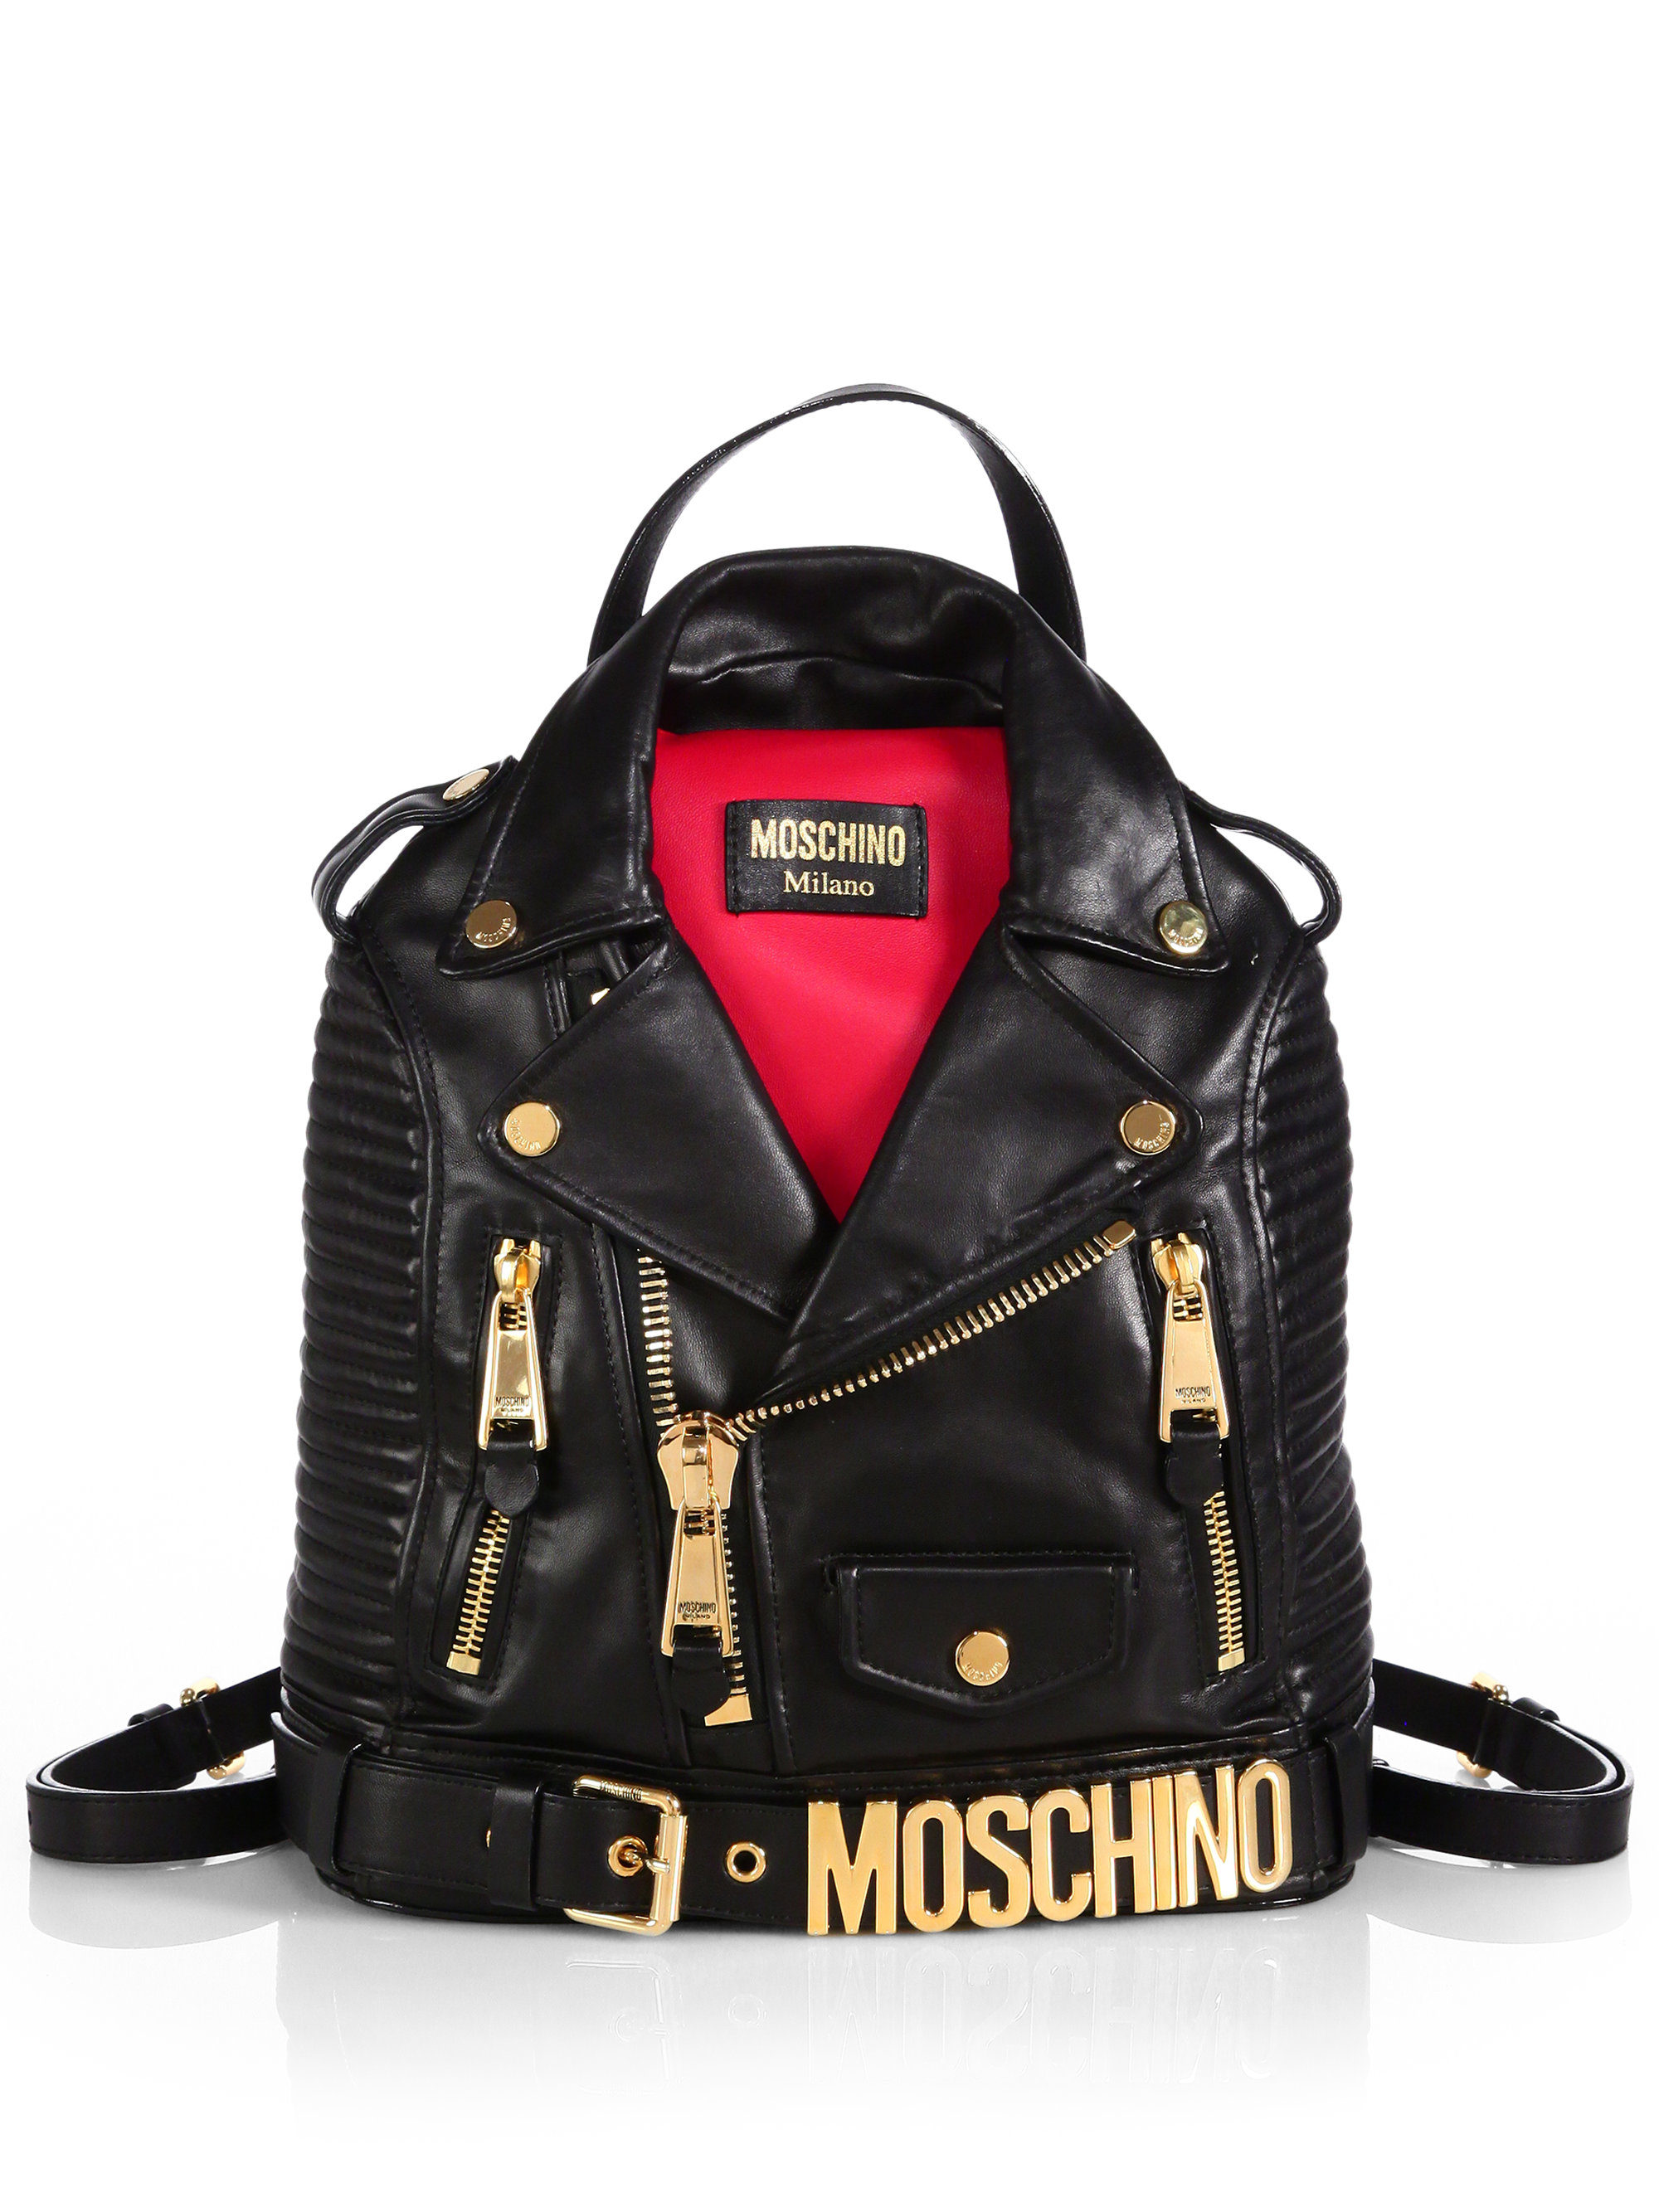 Leather jacket and backpack